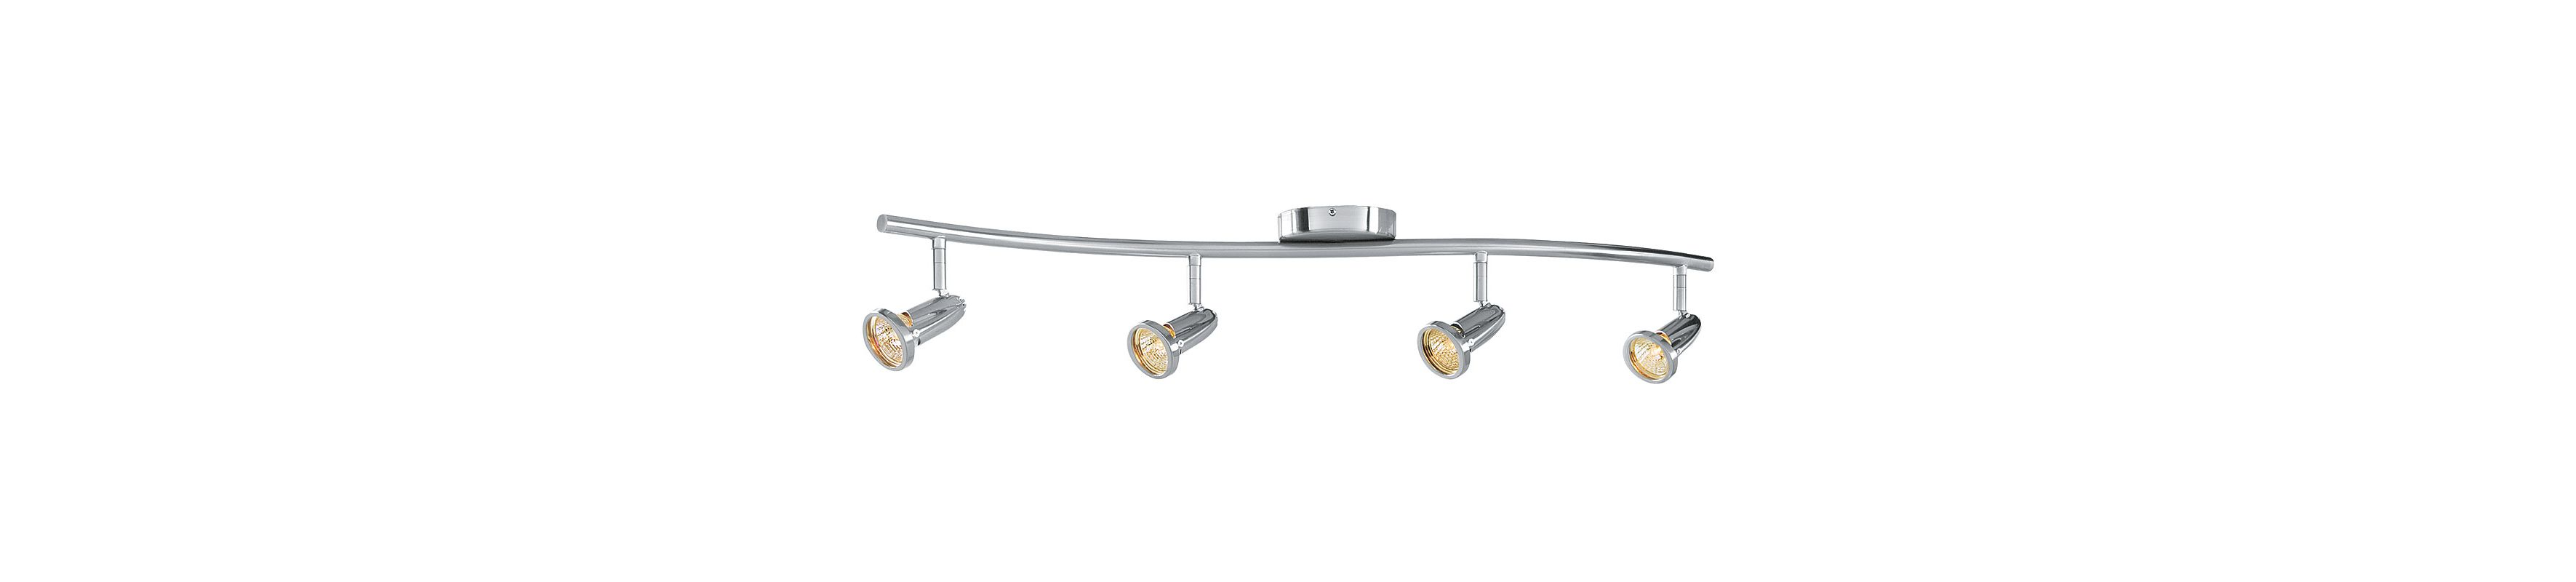 Access Lighting 52204 Cobra 4 Light Ceiling or Wall Spotlight Brushed